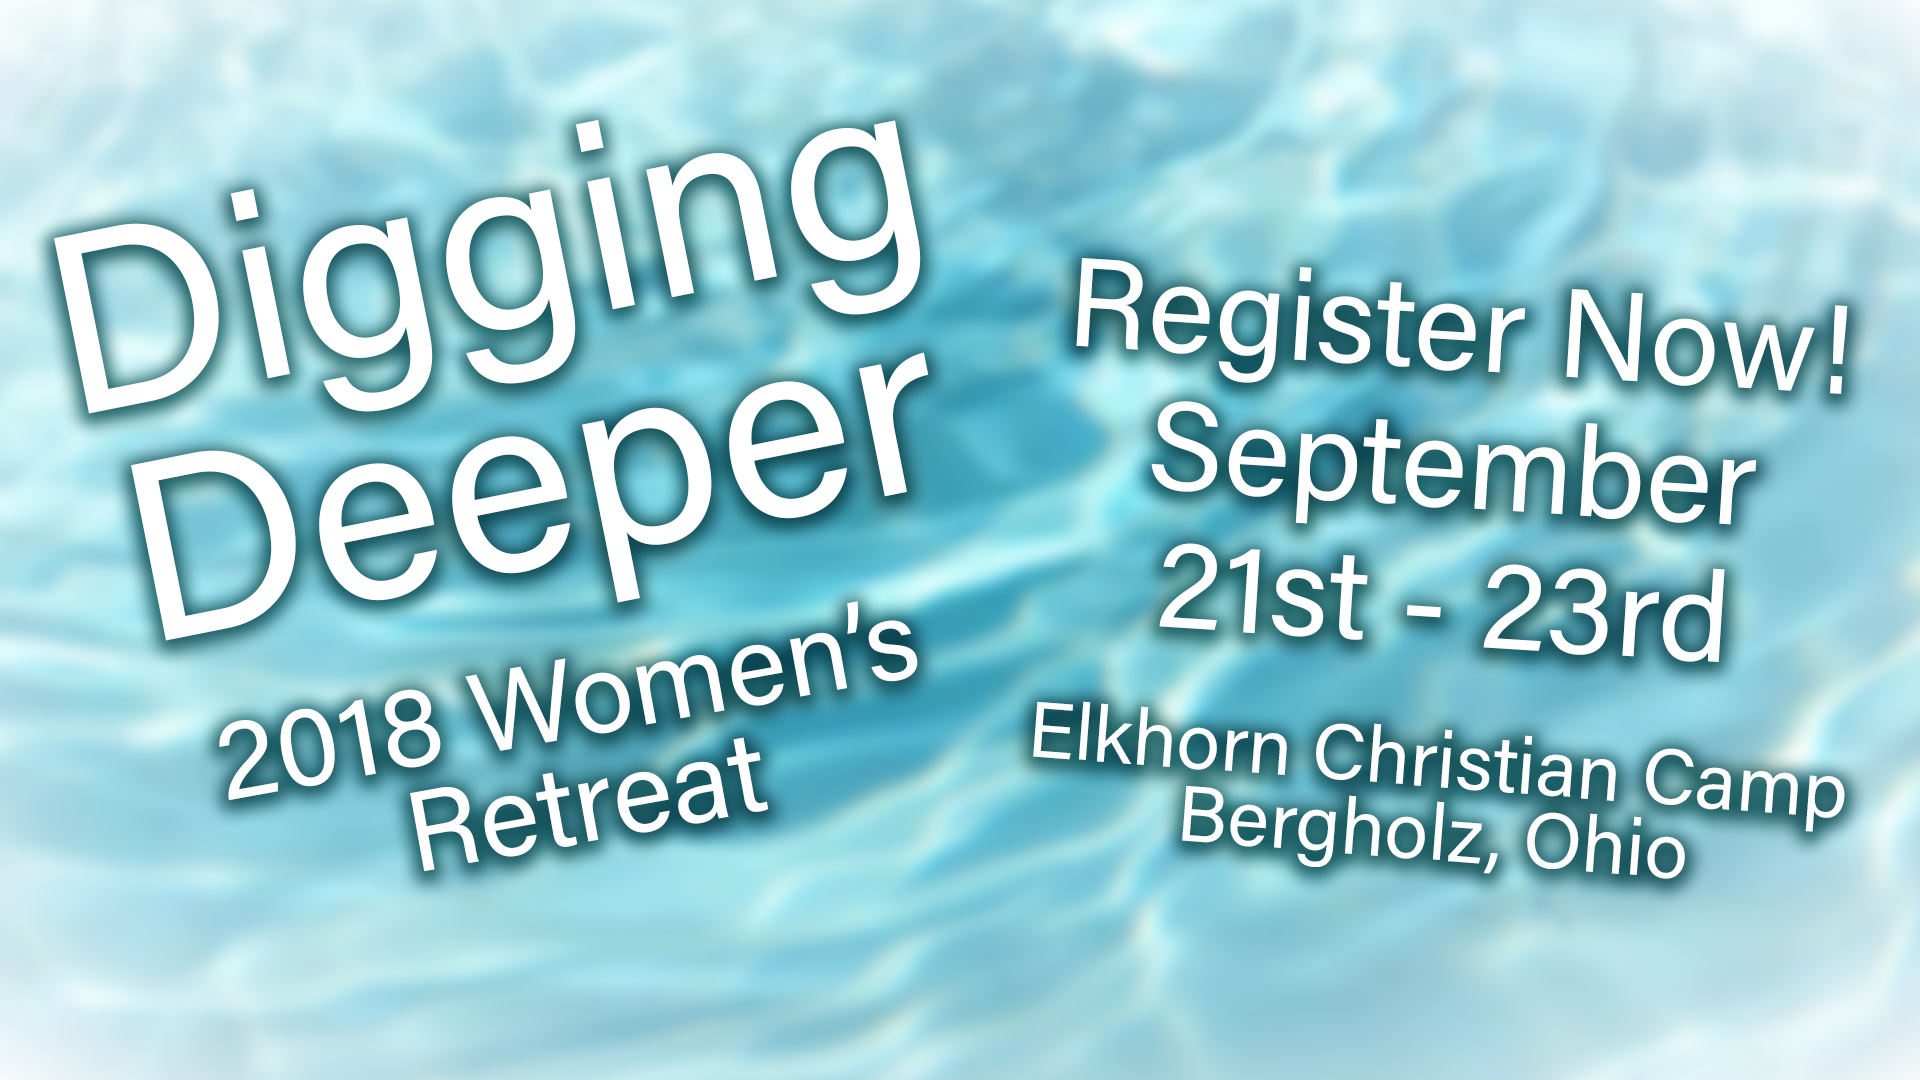 Diggingdeeper womensretreat2018 1080pv2